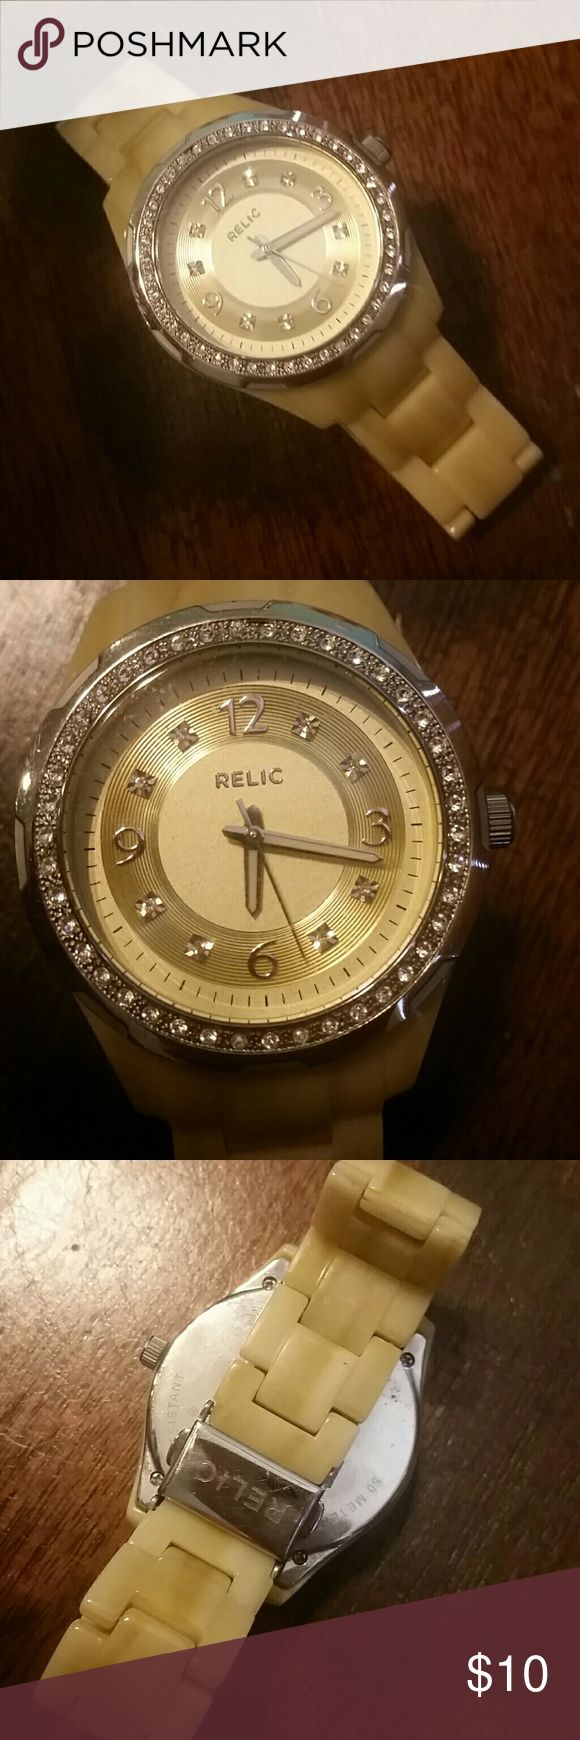 💜💙💚 Bigger Bundles Save More!!! 💚💙💜 Water resistant Relic watch with a shiny bamboo looking band, barely worn  💜💙💚 Bigger Bundles Save More!!! 💚💙💜 💜 10% off 2 or more... 💙 15% off 3 or more...  💚 20% of 4 or more... 💜 25% off 5 or more!! Relic Accessories Watches